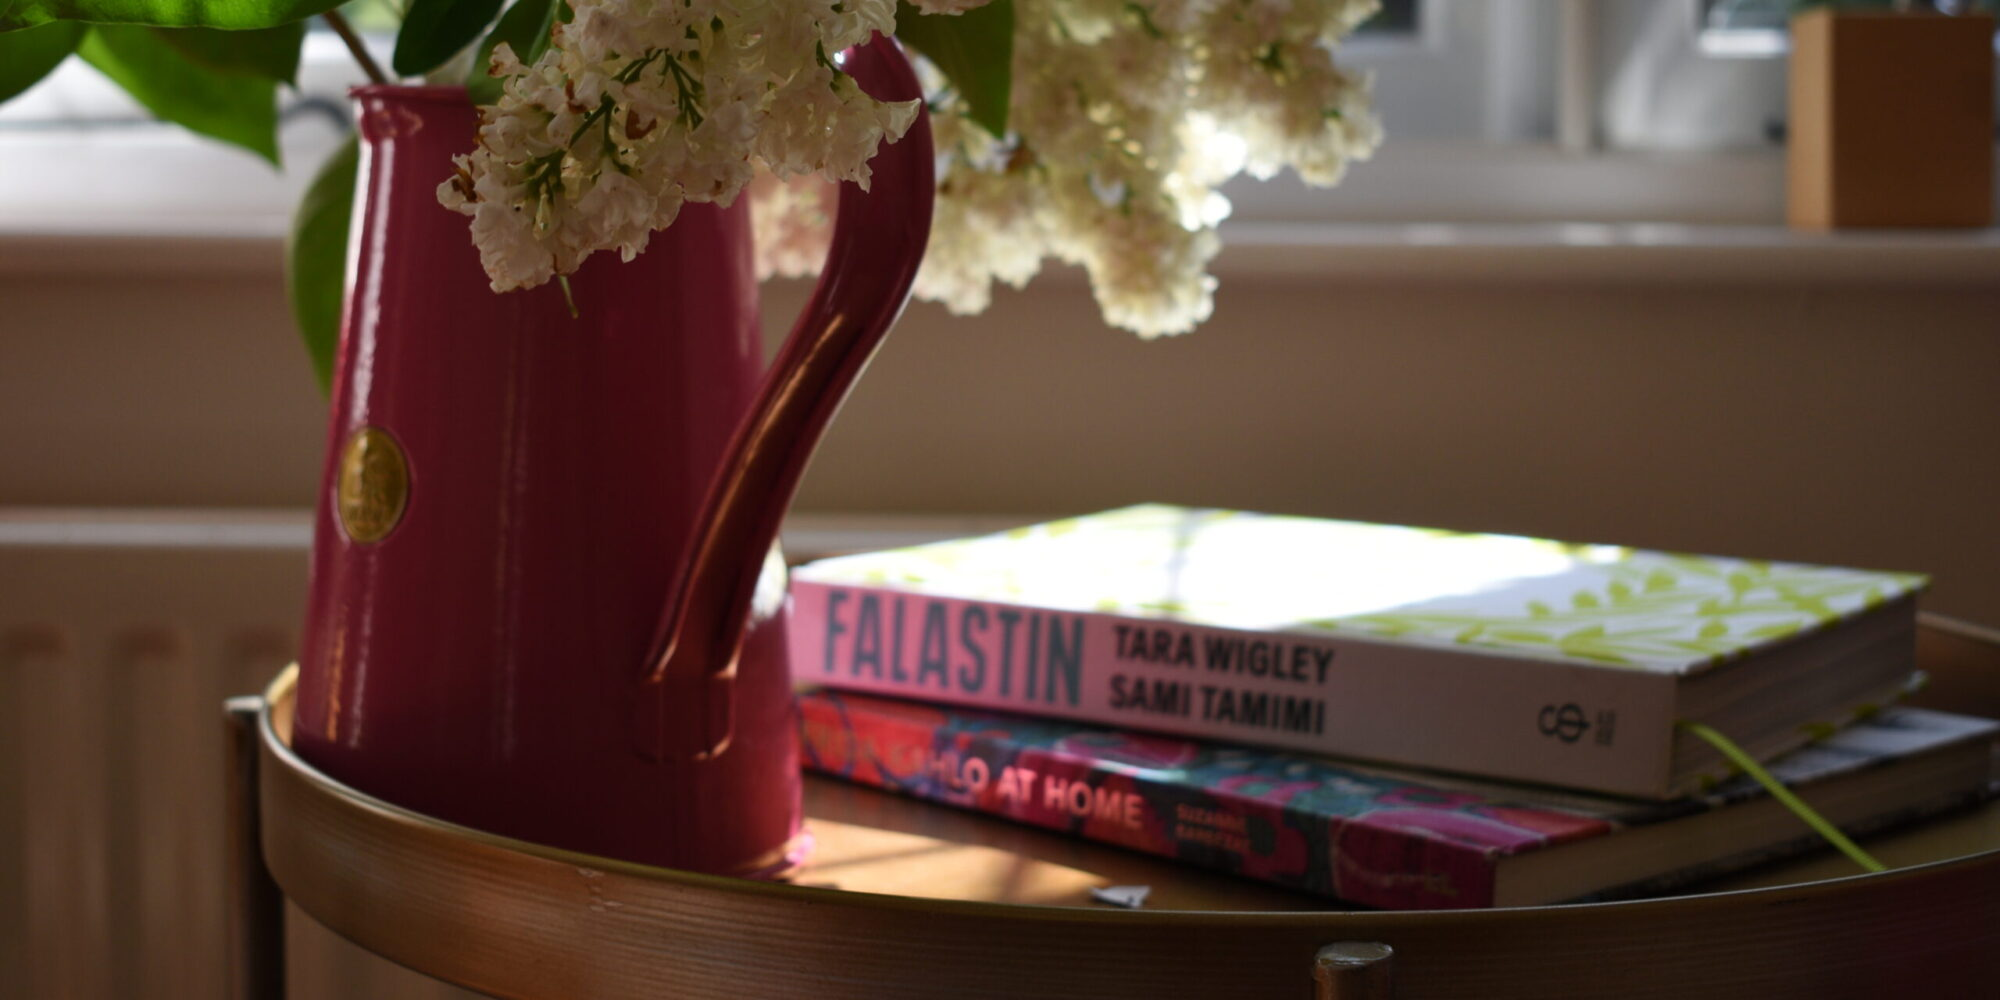 Cookbooks on side table | Hybrid cookbook